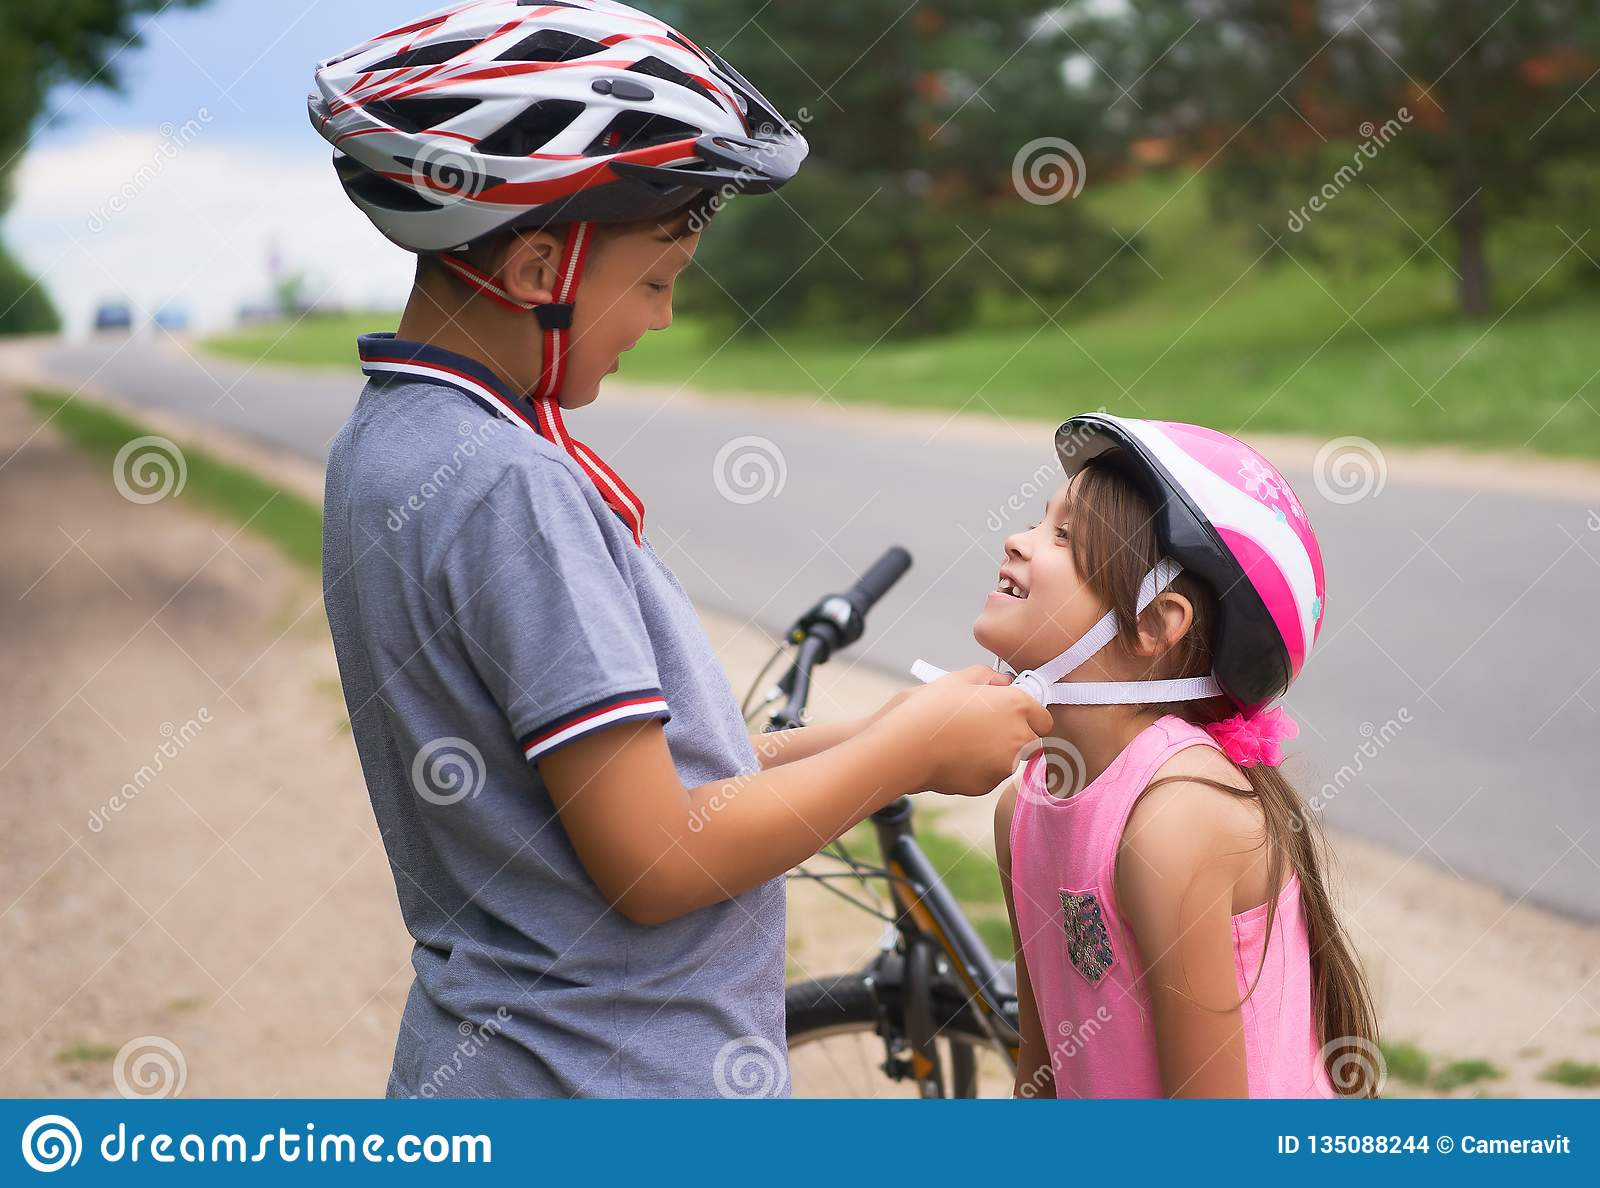 Children learn to ride bicycle in a park on summer day. Teenager boy helping preschooler girl to put on safety helmet